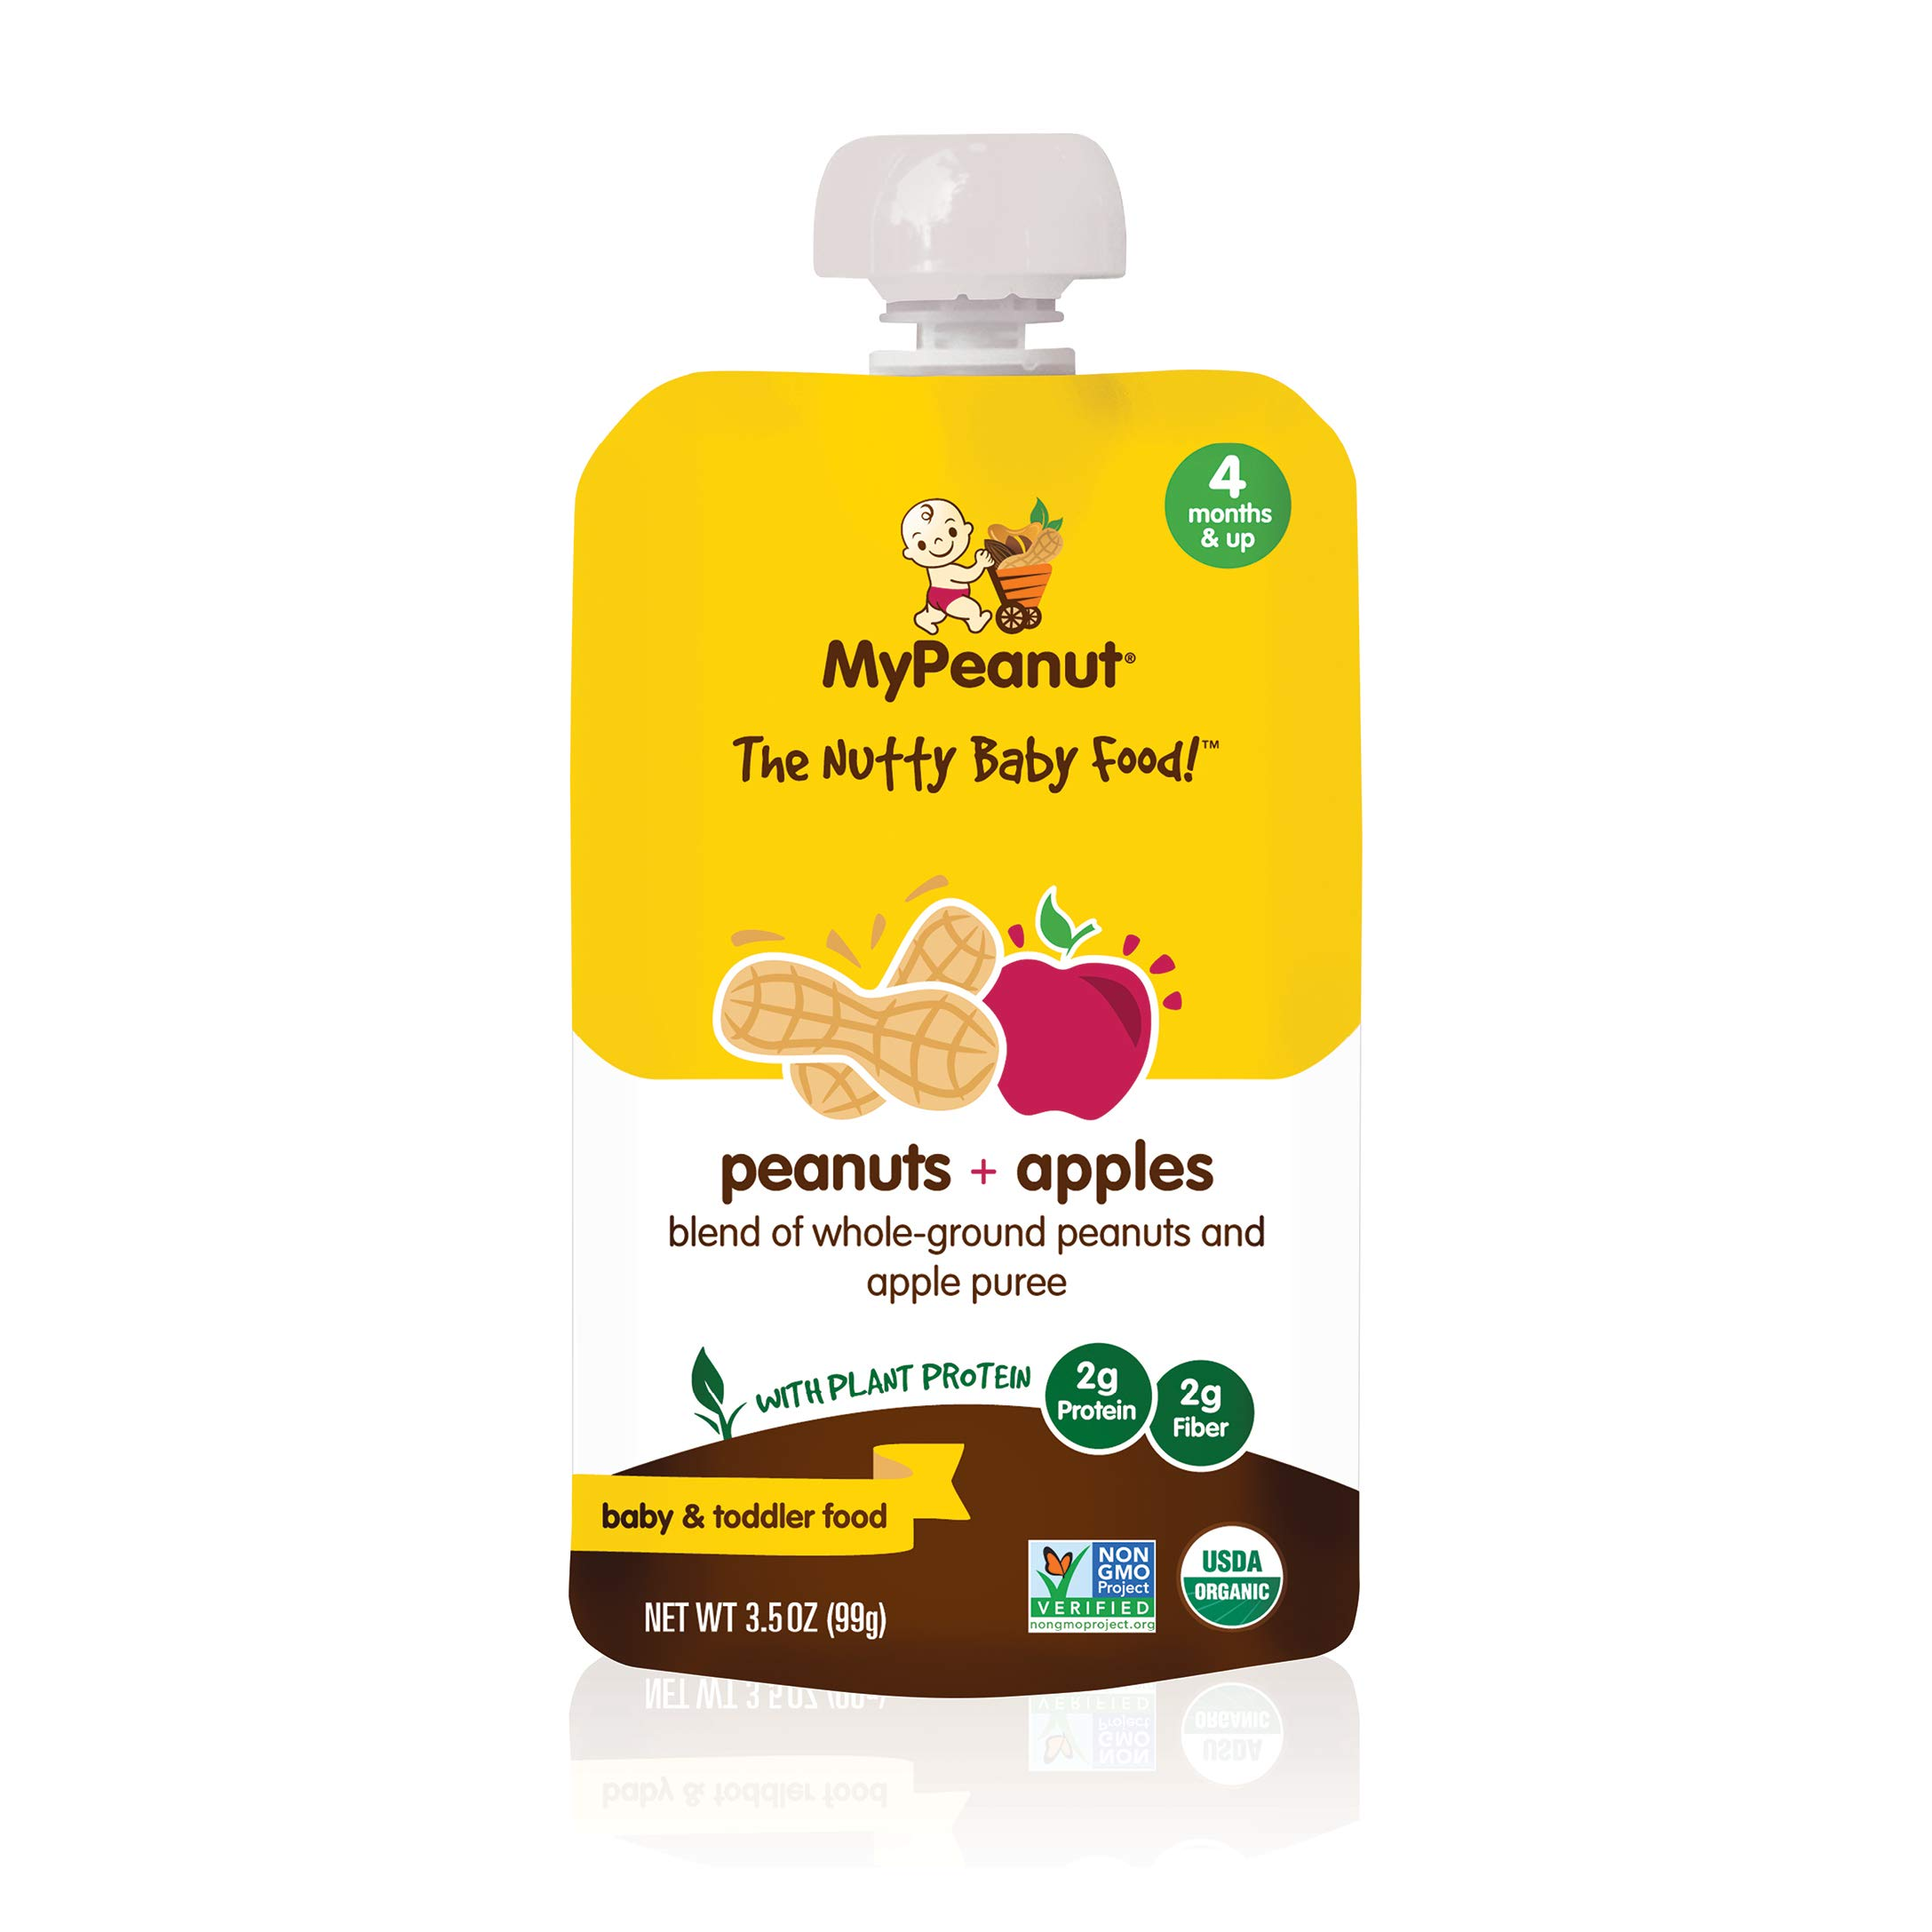 MyPeanut Baby Food, Organic Stage 1 Peanut and Apple Puree for Introducing and Feeding Babies and Toddlers Nuts, Non-GMO, BPA Free 3.5 oz Pouch, 12 Pack